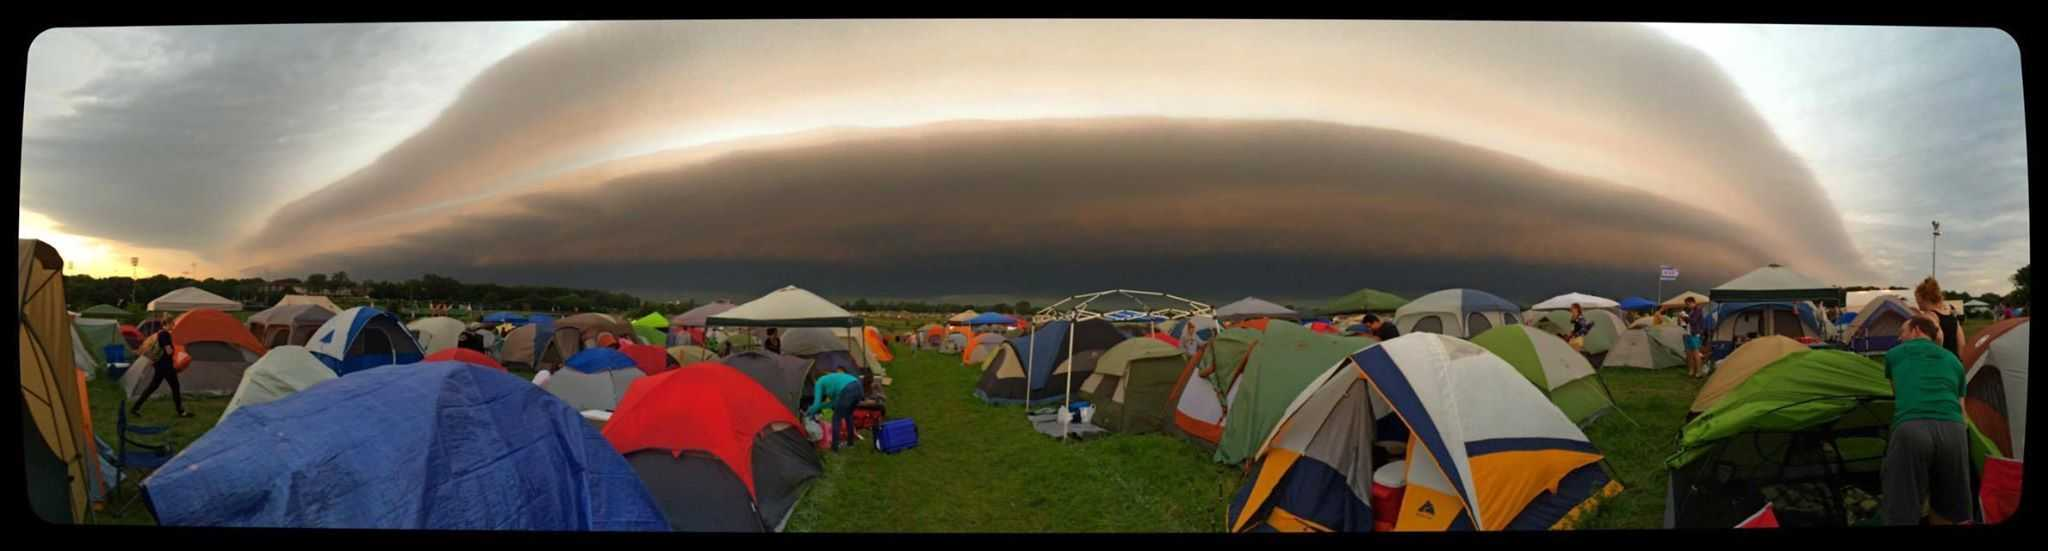 Our wake-up call in tent city at the Gentleman of the Road Tour in Waverly, Iowa on June 20, 2015.